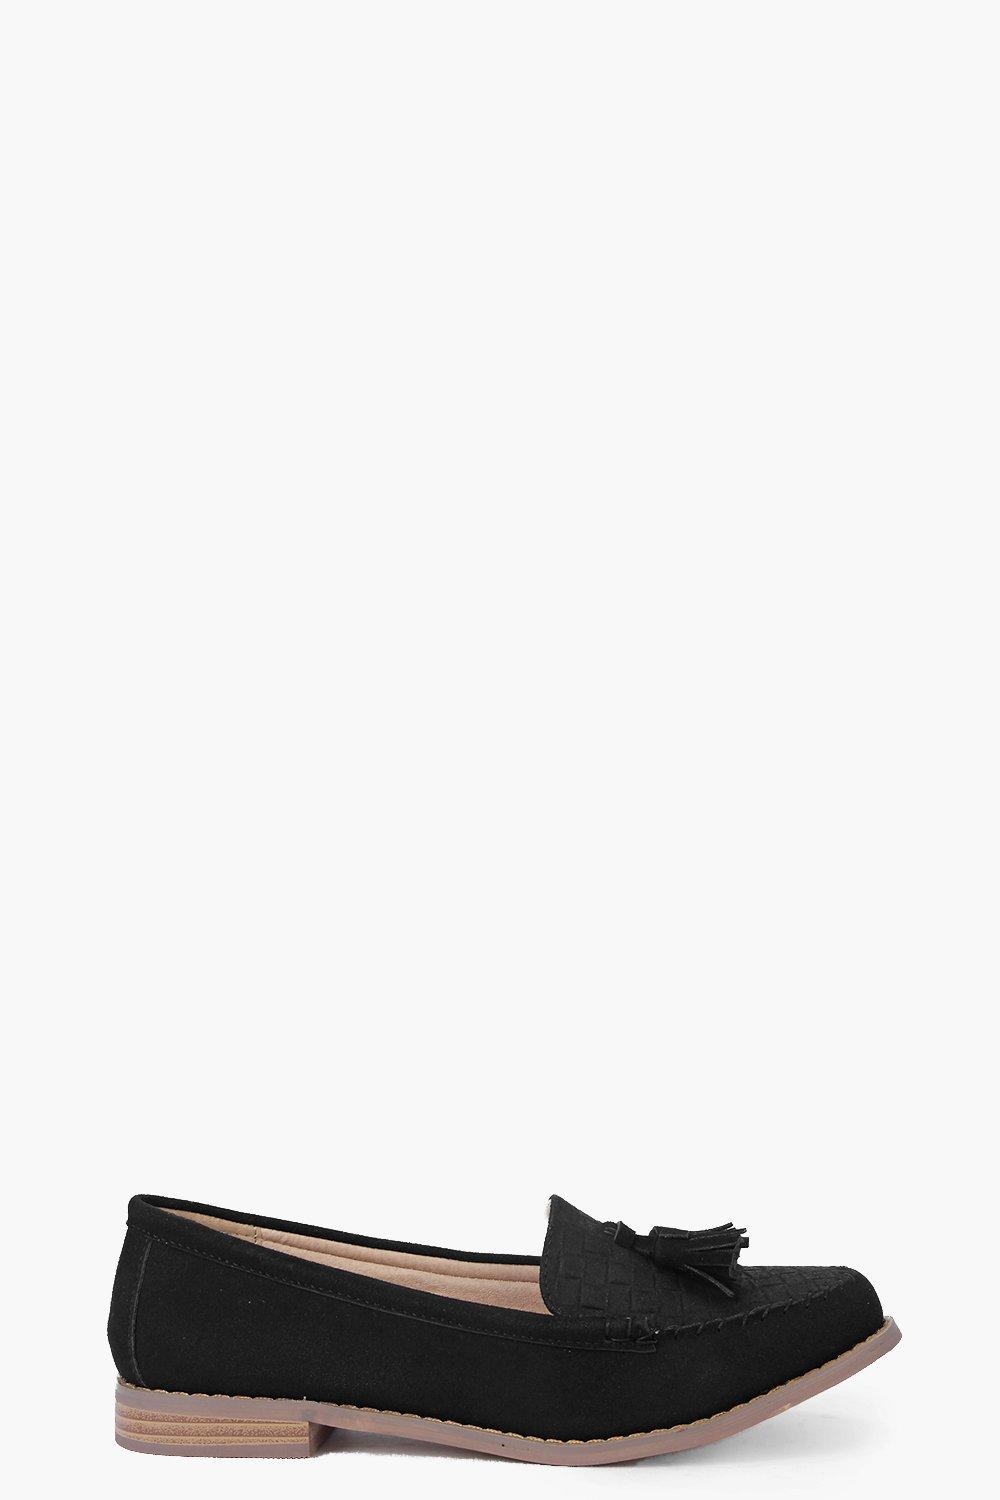 Lucy Woven Look Suedette Loafer